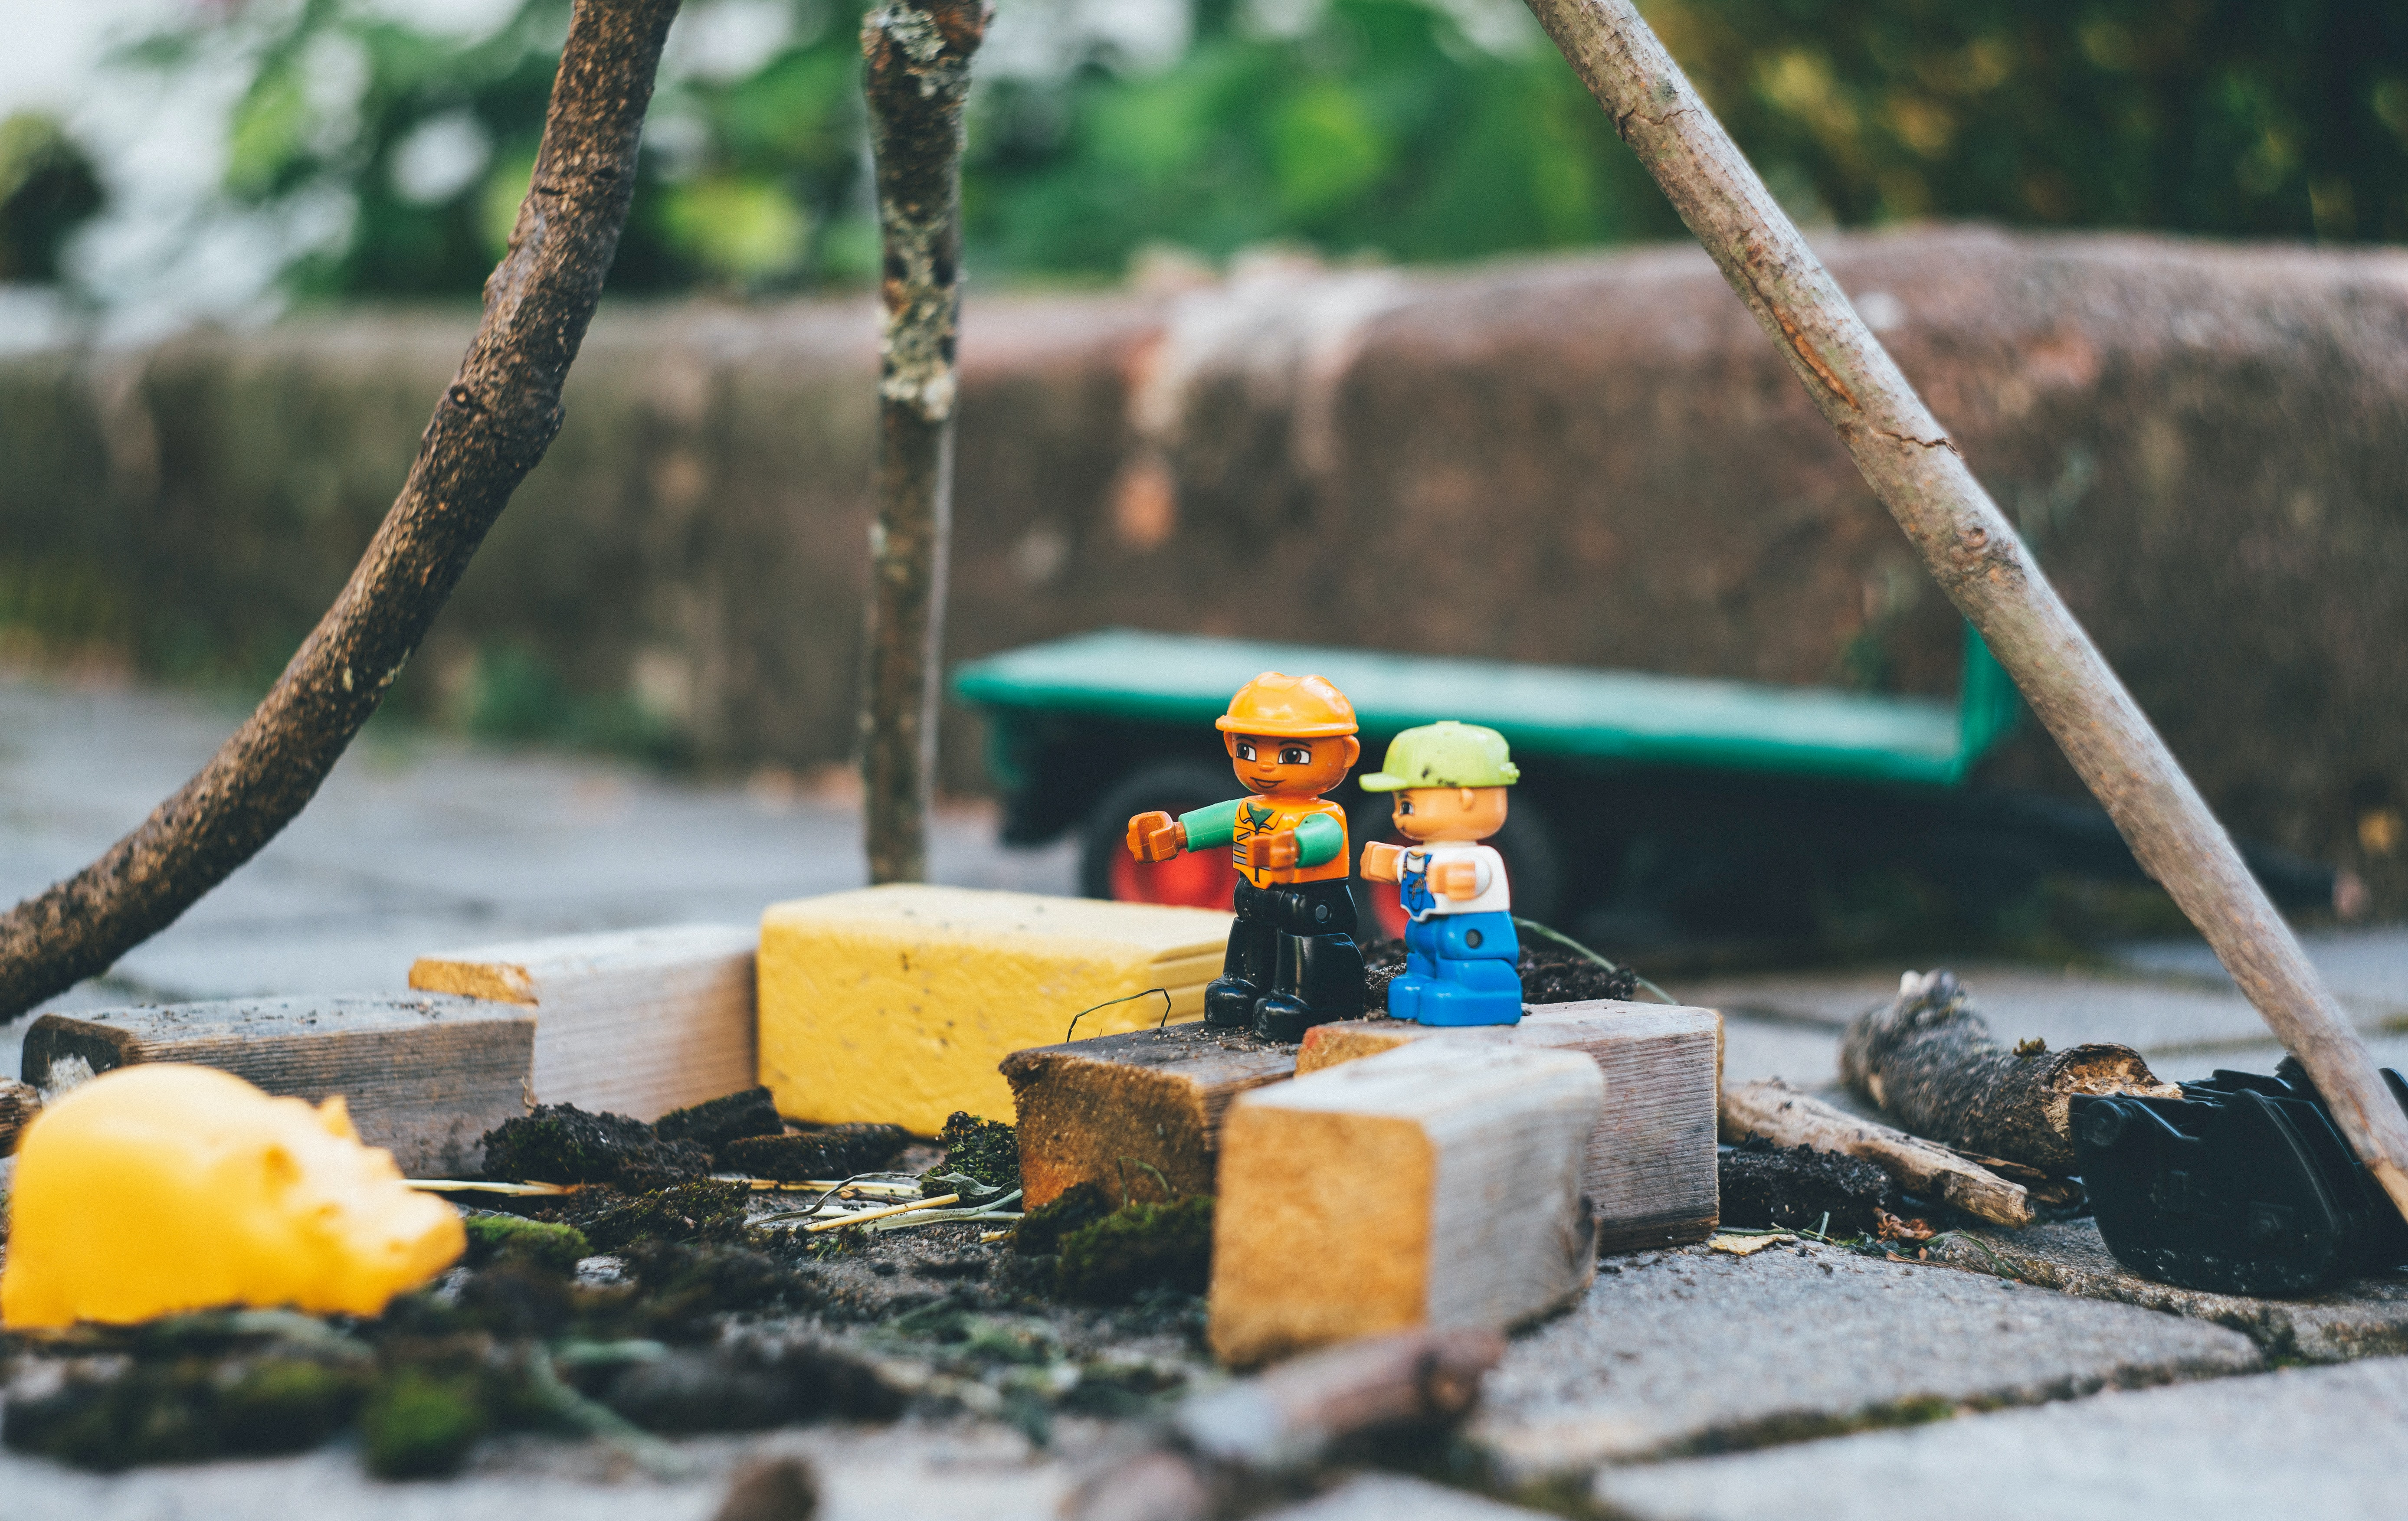 two lego toys on wooden bricks close-up photography